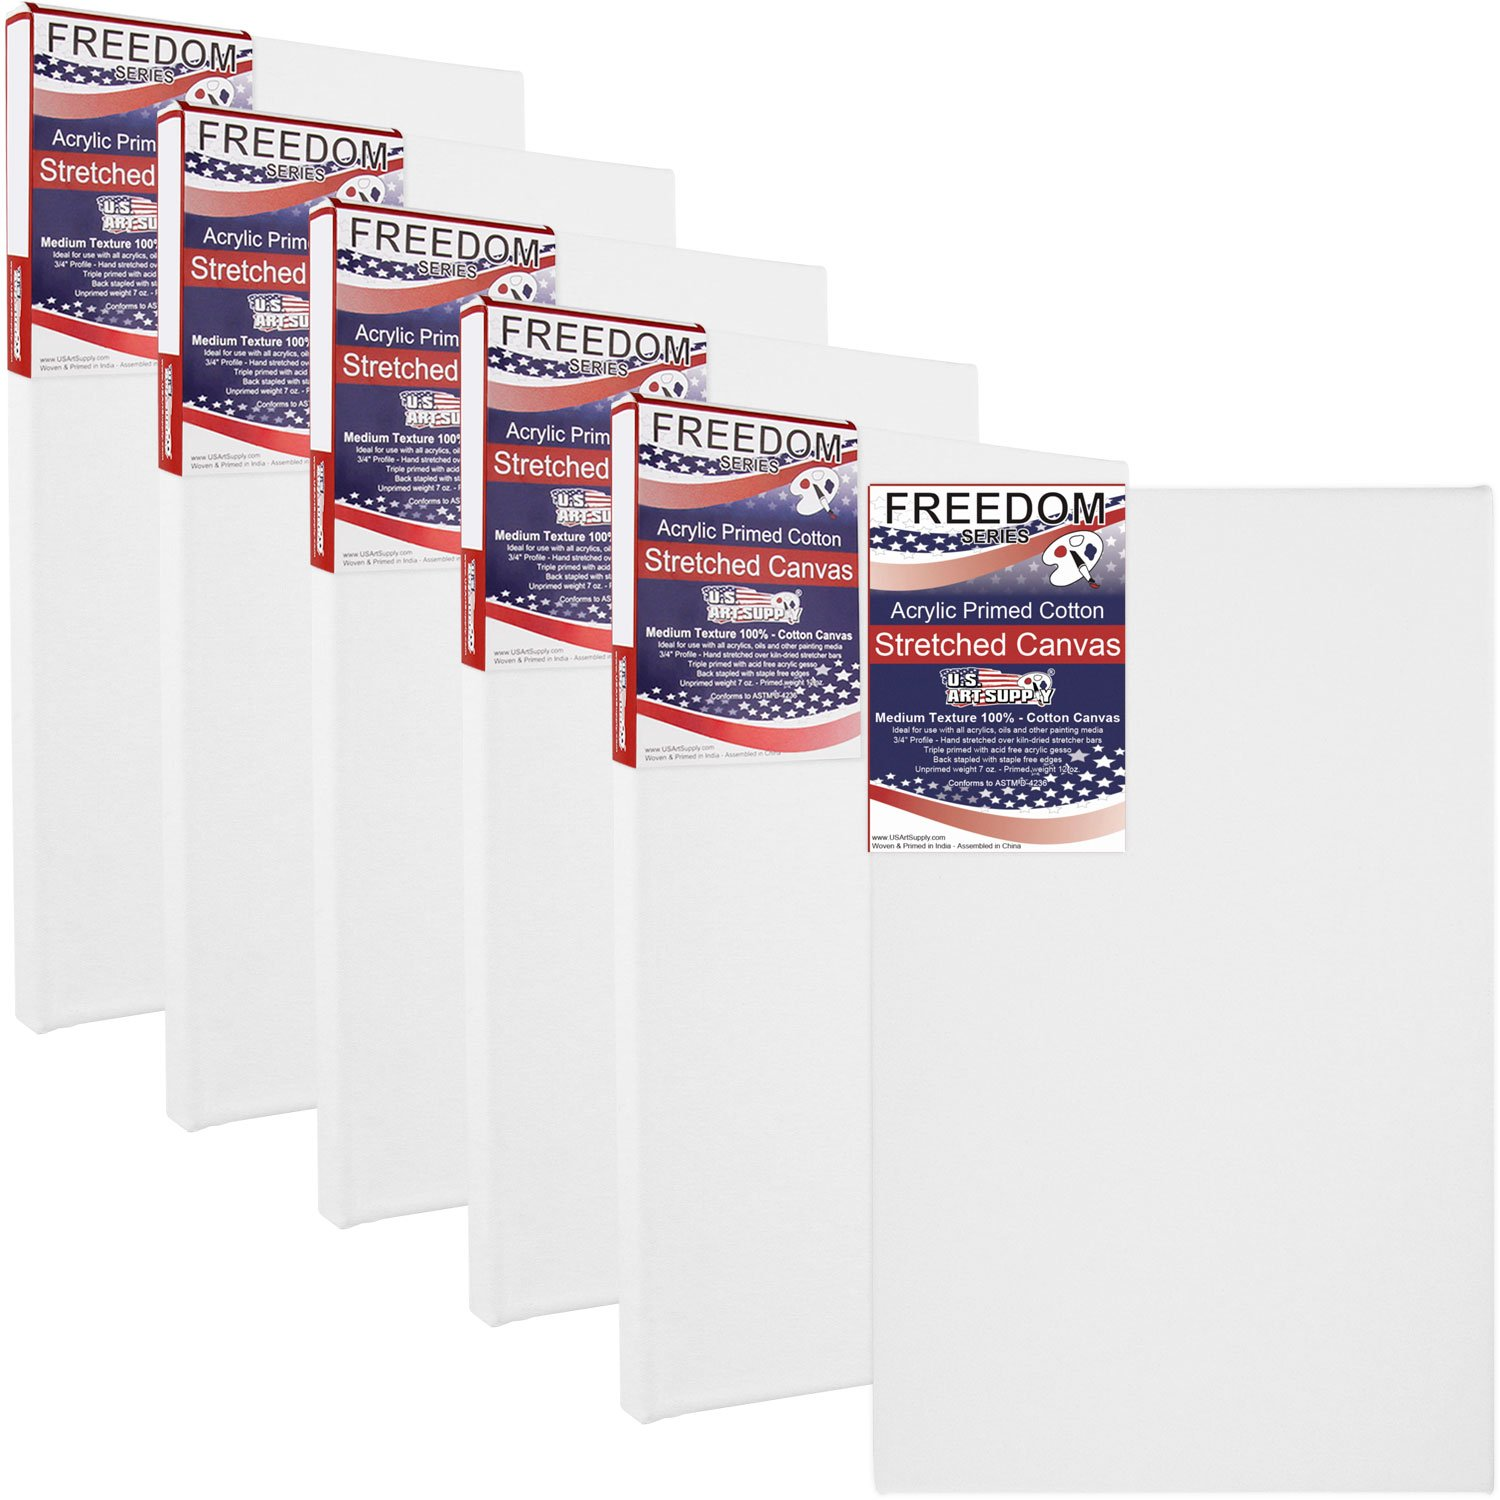 US Art Supply 24 X 48 inch Professional Quality Acid Free Stretched Canvas 6-Pack - 3/4 Profile 12 Ounce Primed Gesso - (1 Full Case of 6 Single Canvases)